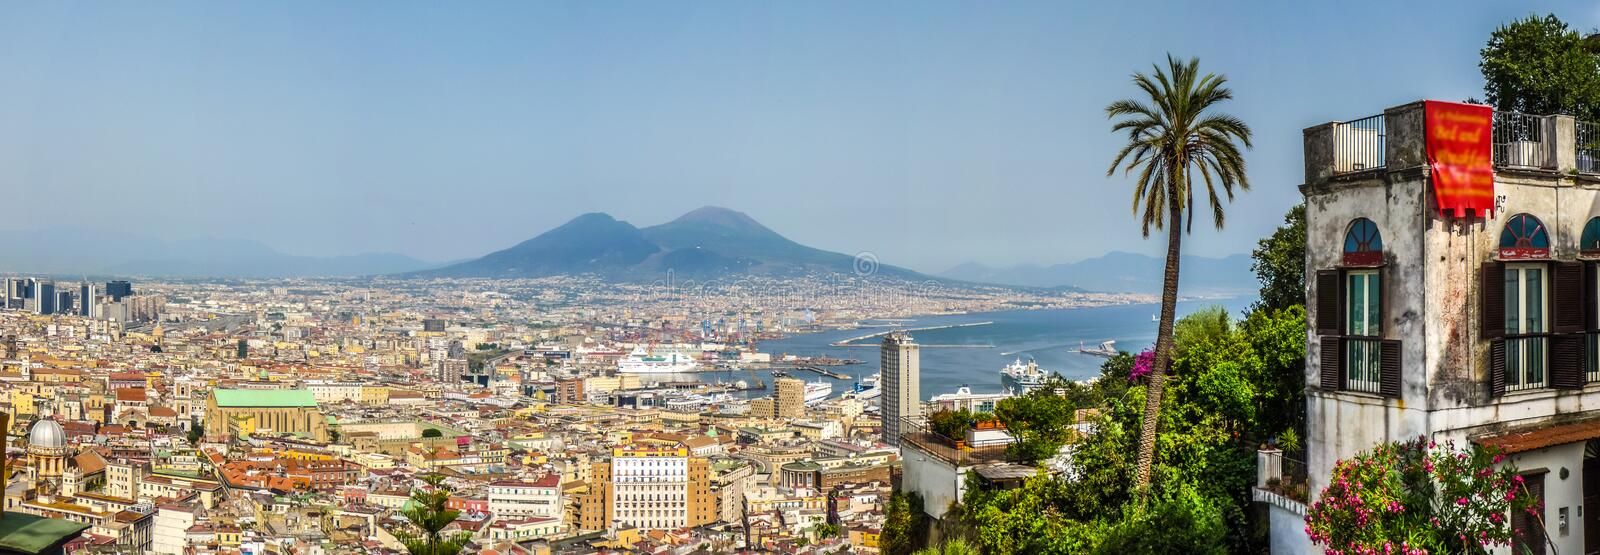 Aerial view of Napoli with Mount Vesuvius at sunset, Campania, Italy. Scenic picture-postcard view of the city of Napoli (Naples) with famous Mount Vesuvius in royalty free stock images